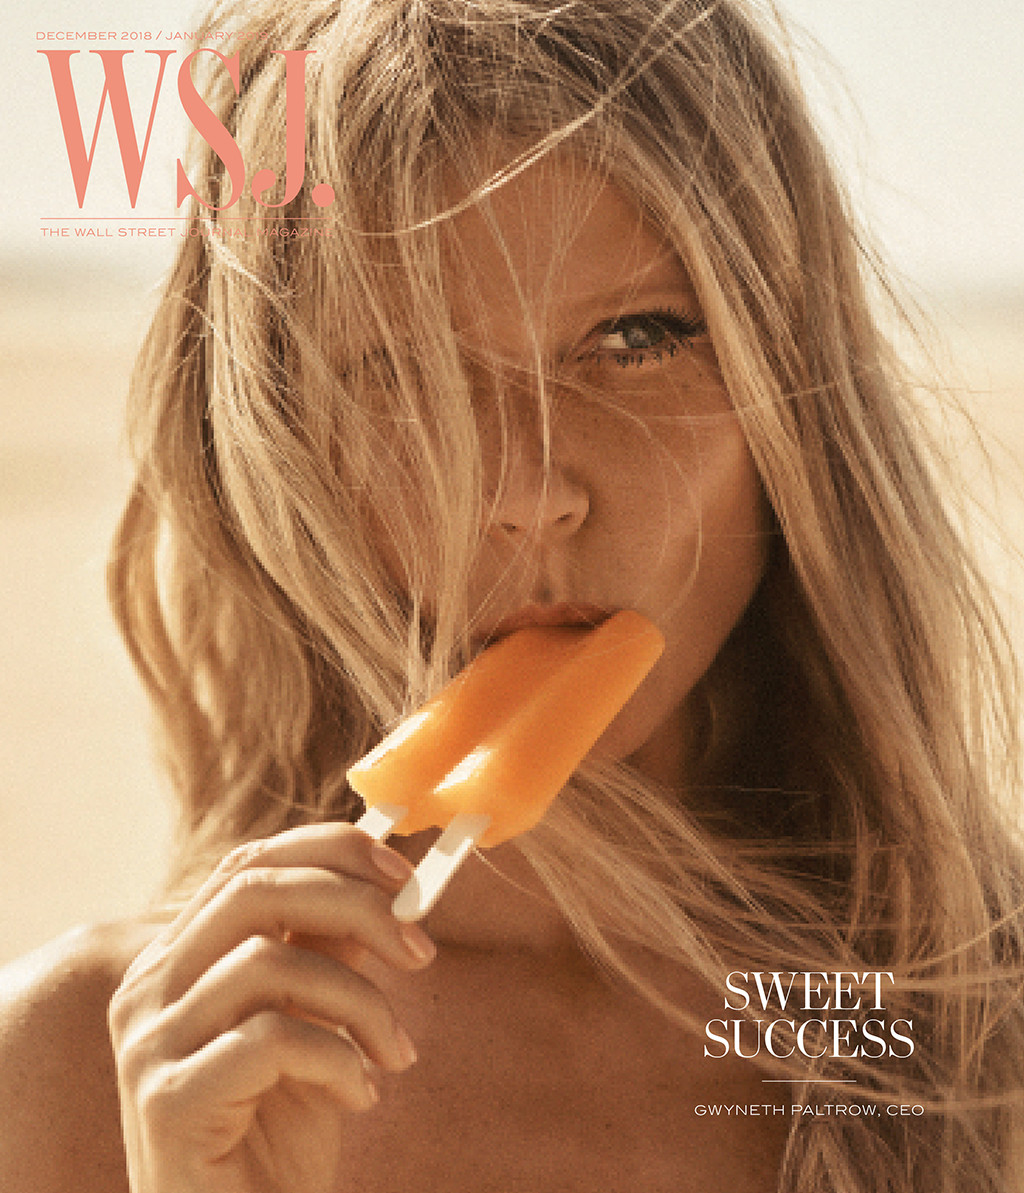 Gwyneth Paltrow, WSJ. Magazine